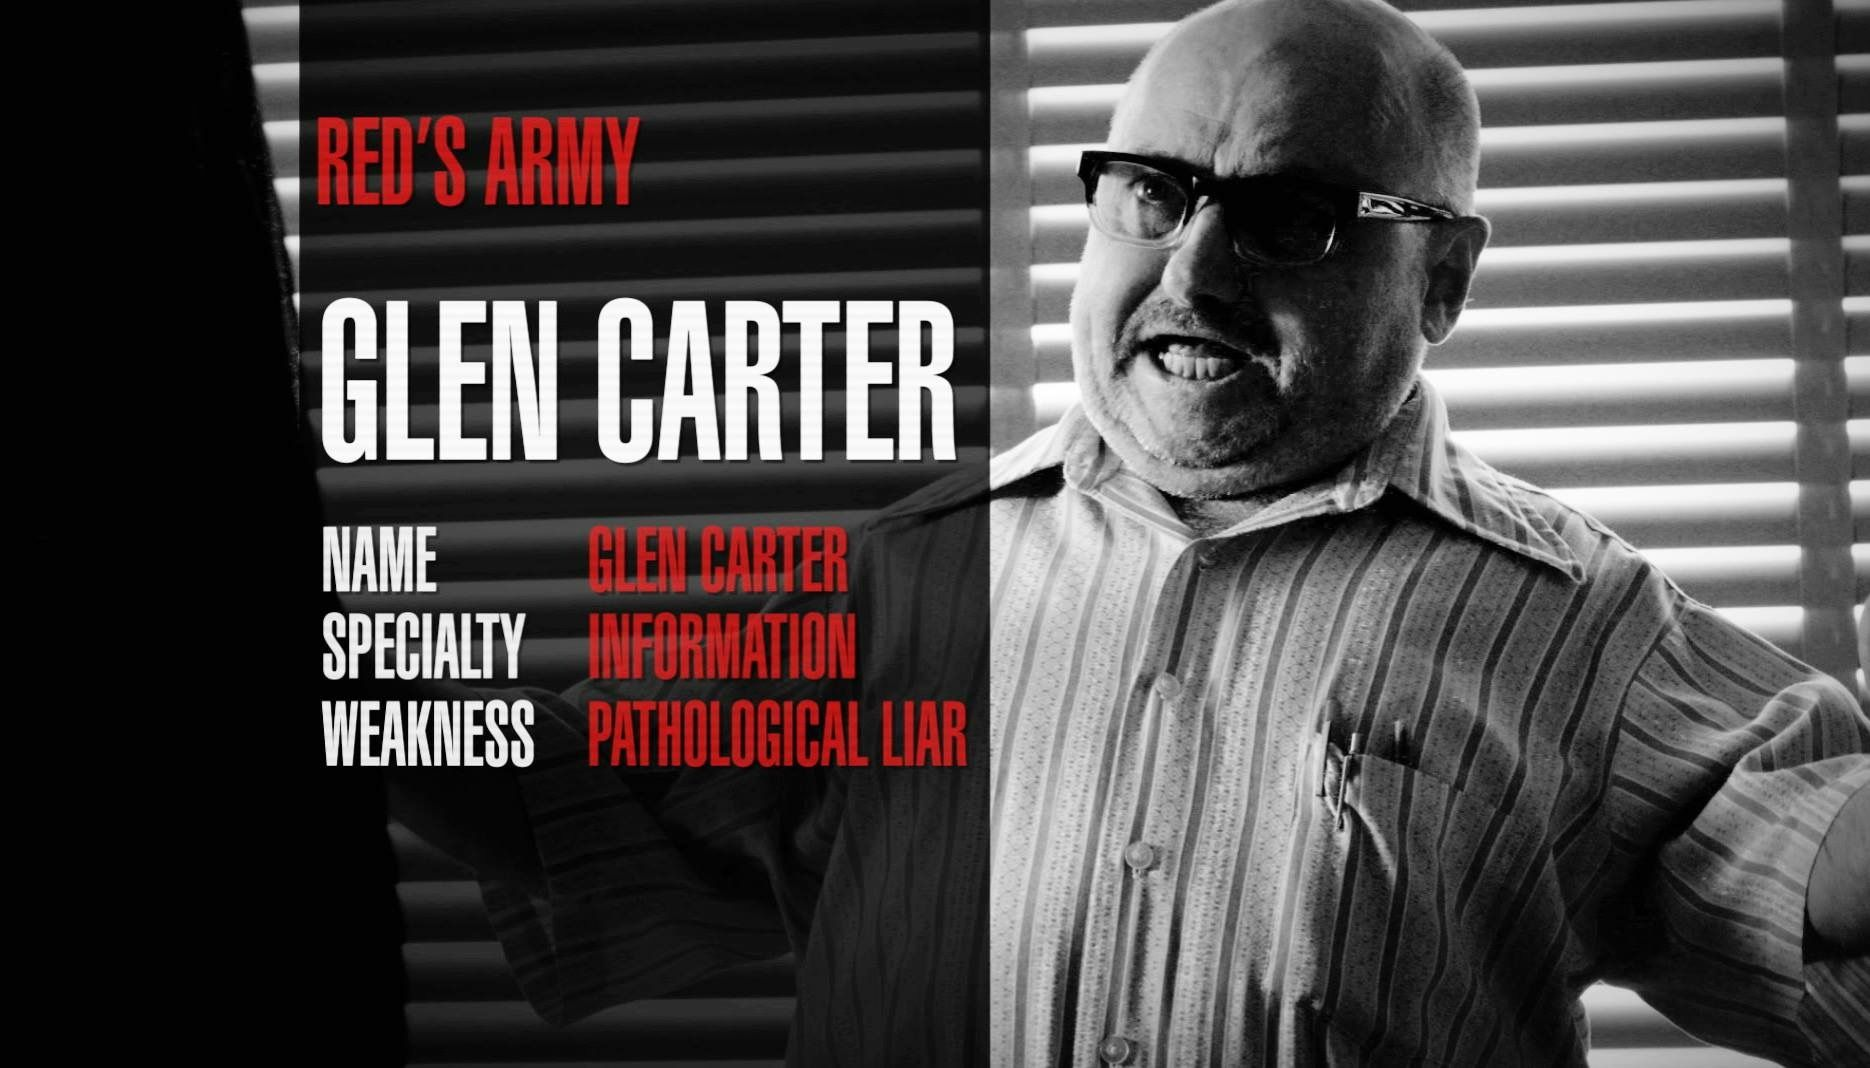 Glen Carter Clark Middleton The Blacklist The Blacklist Red Army Pathological Liar